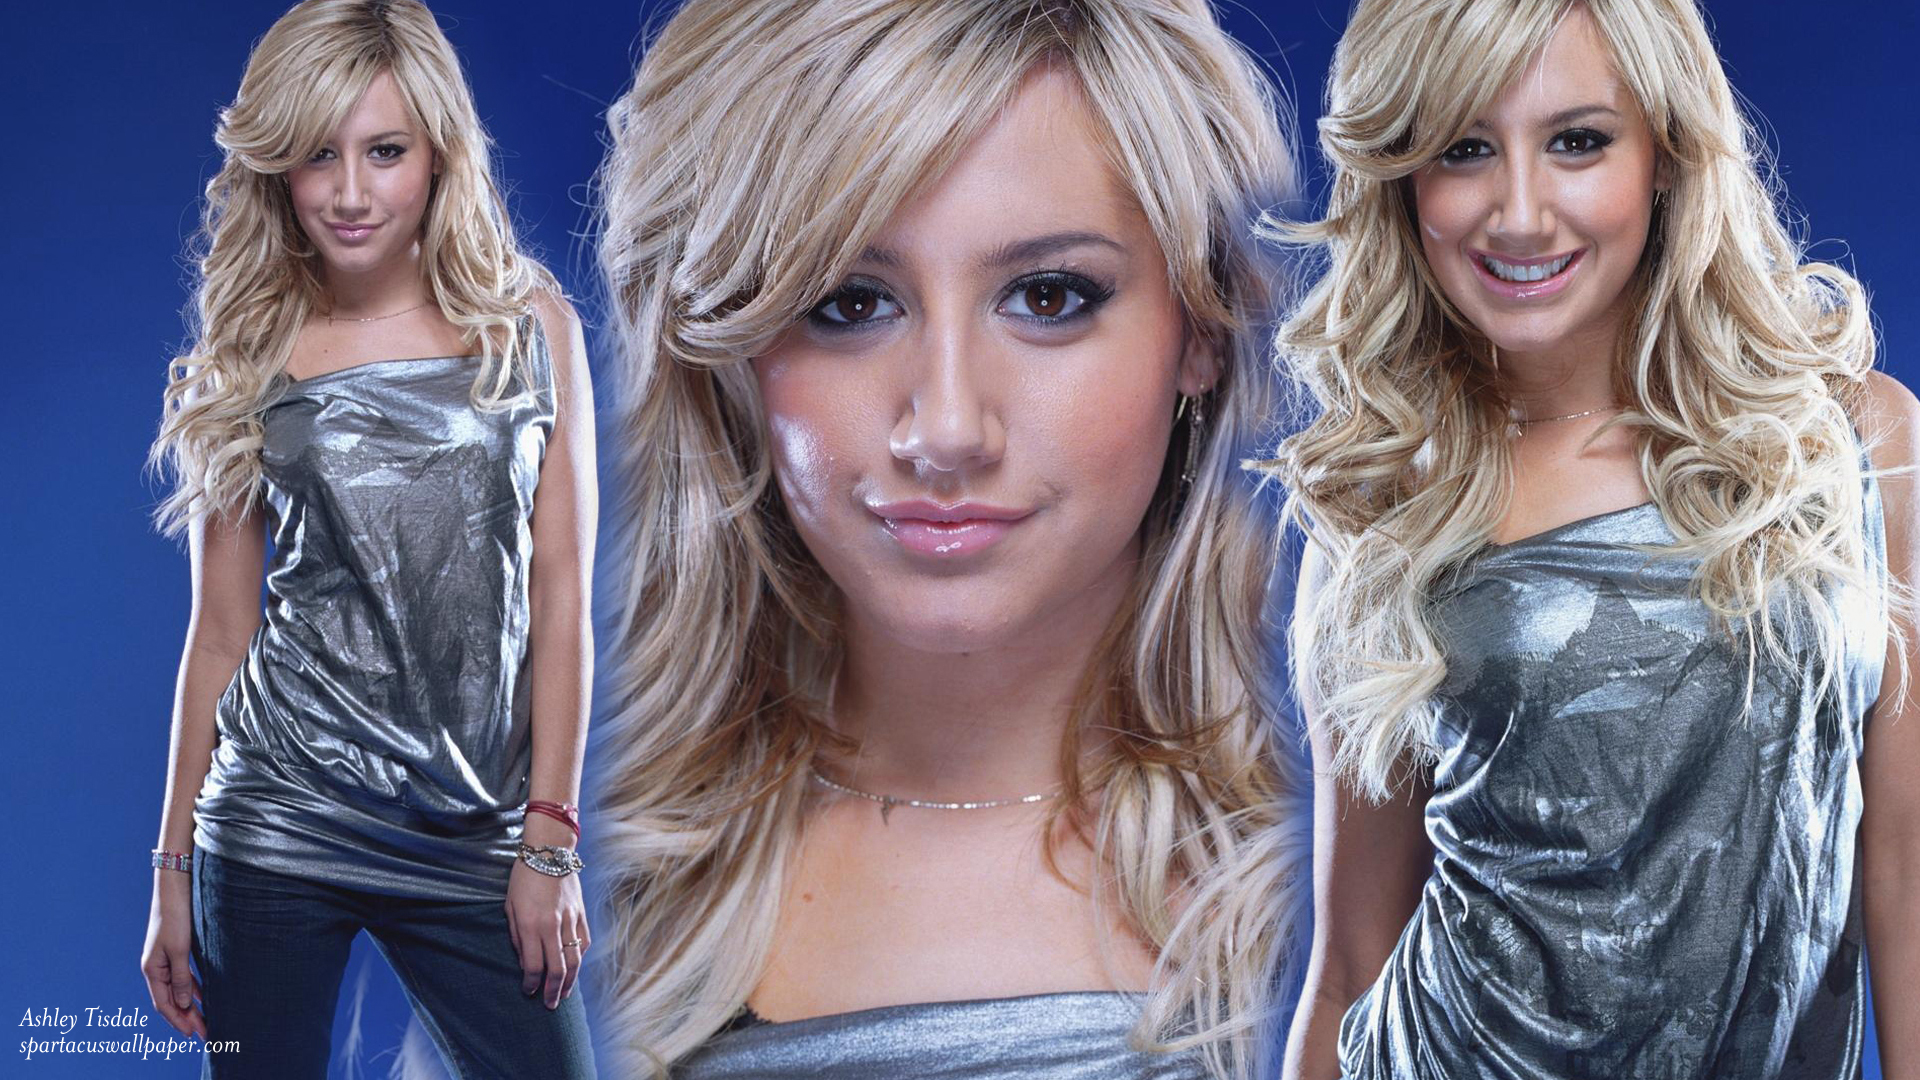 1920x1080 - Ashley Tisdale Wallpapers 19